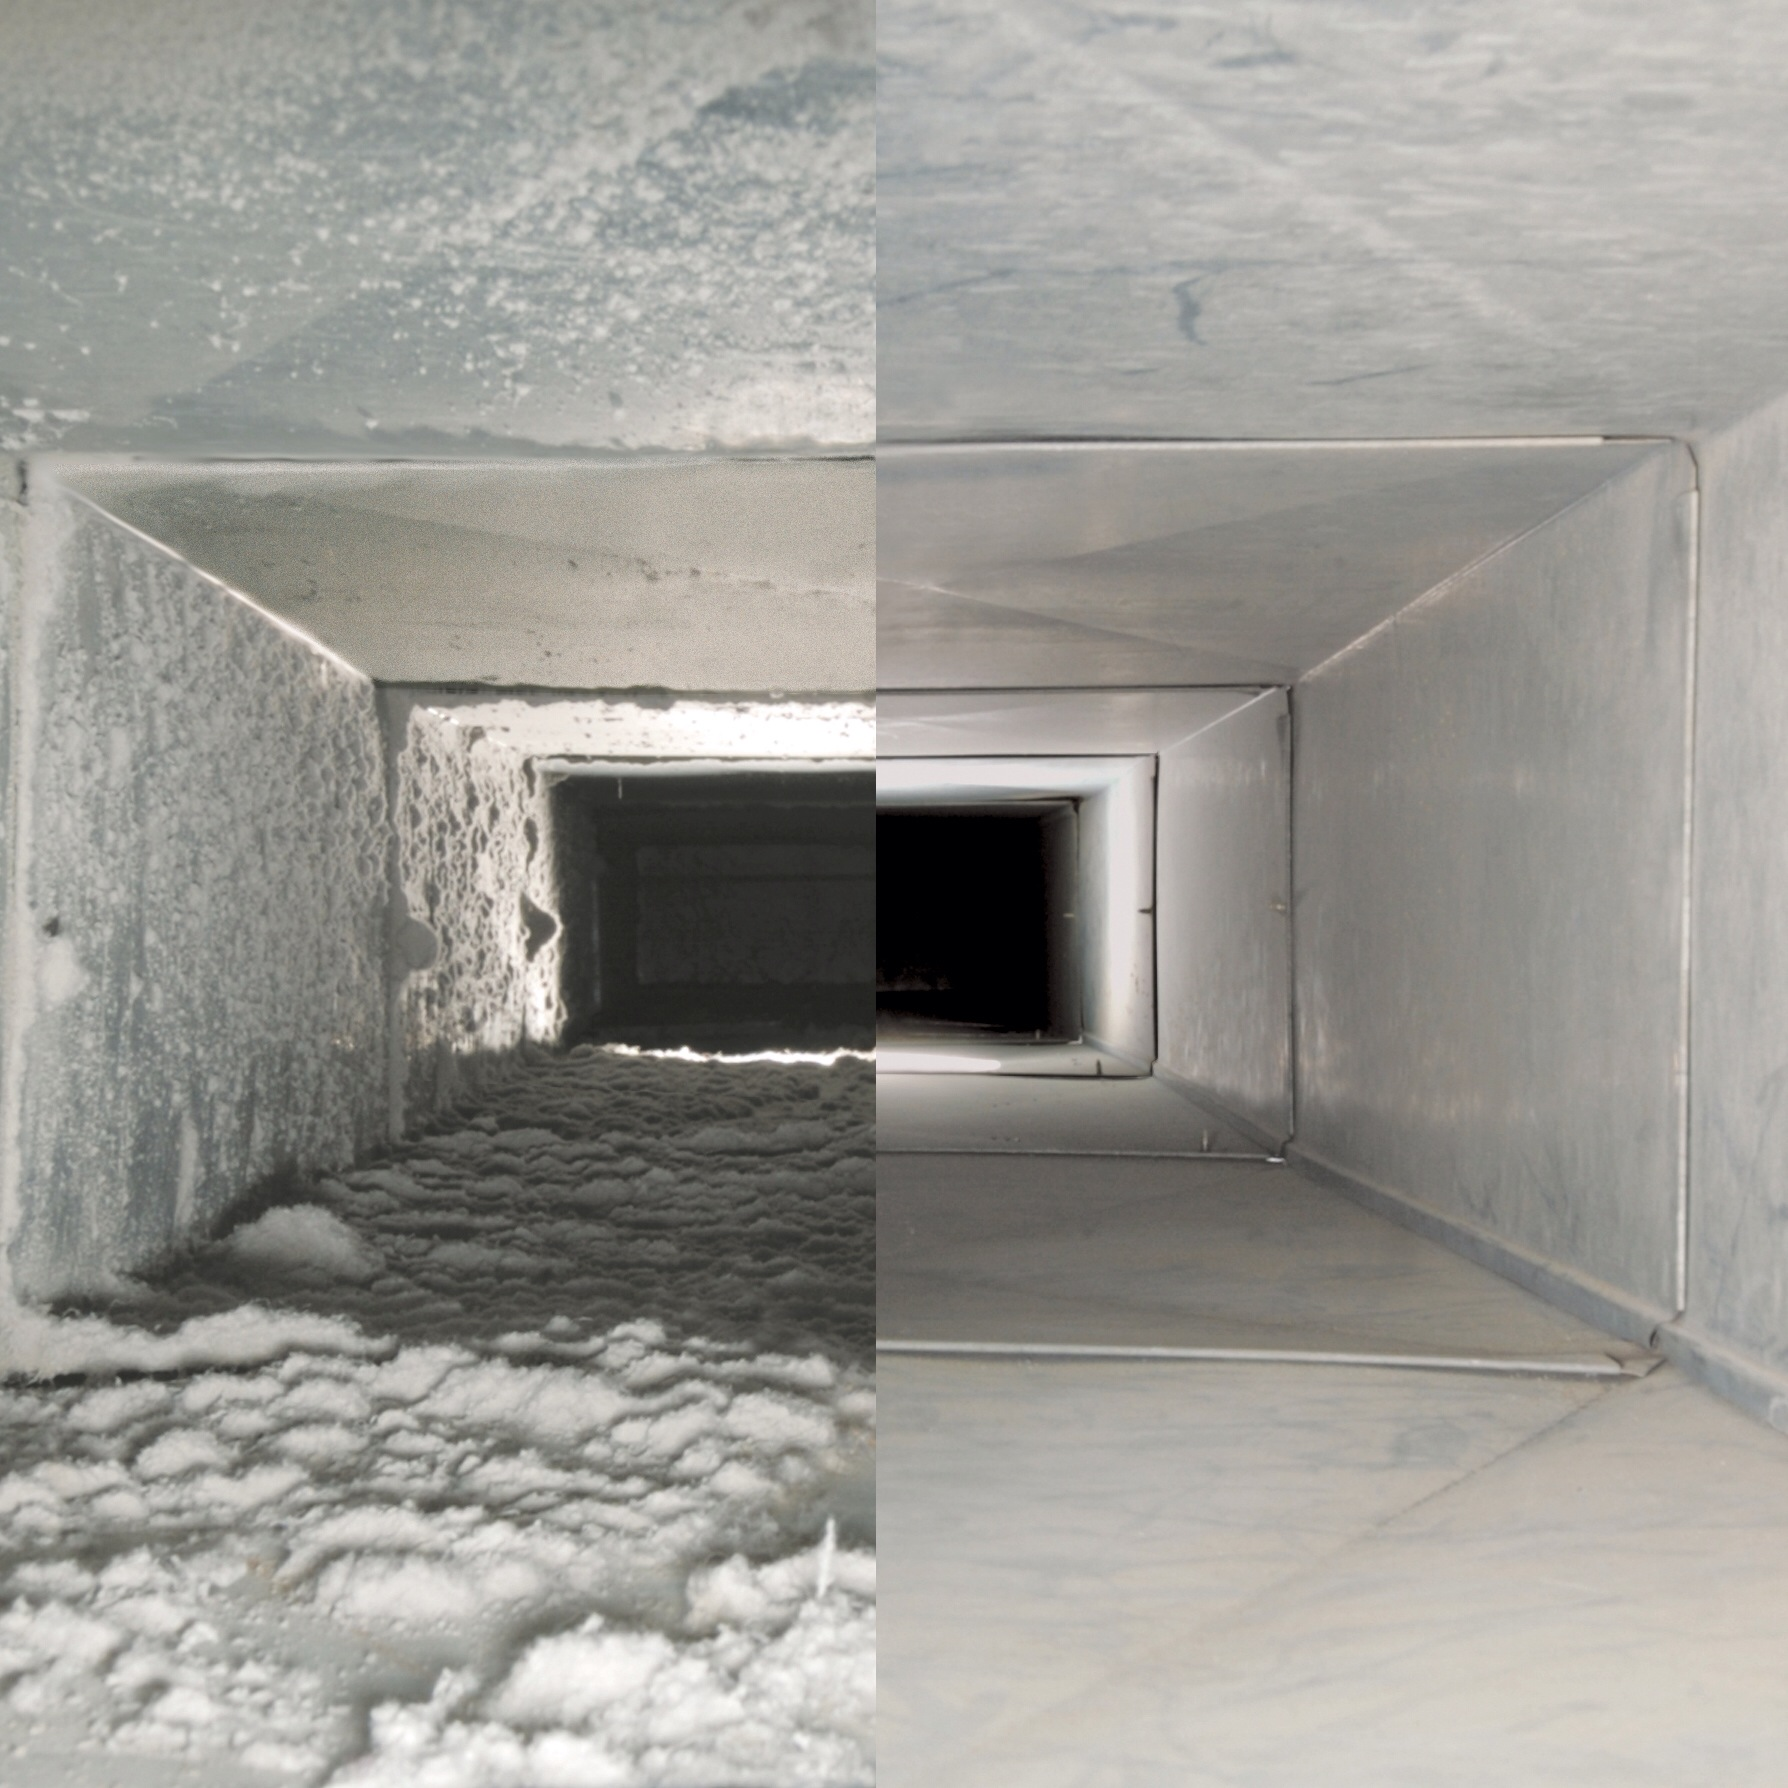 Duct Cleaning Services by Metro Duct Cleaning Minneapolis Minnesota